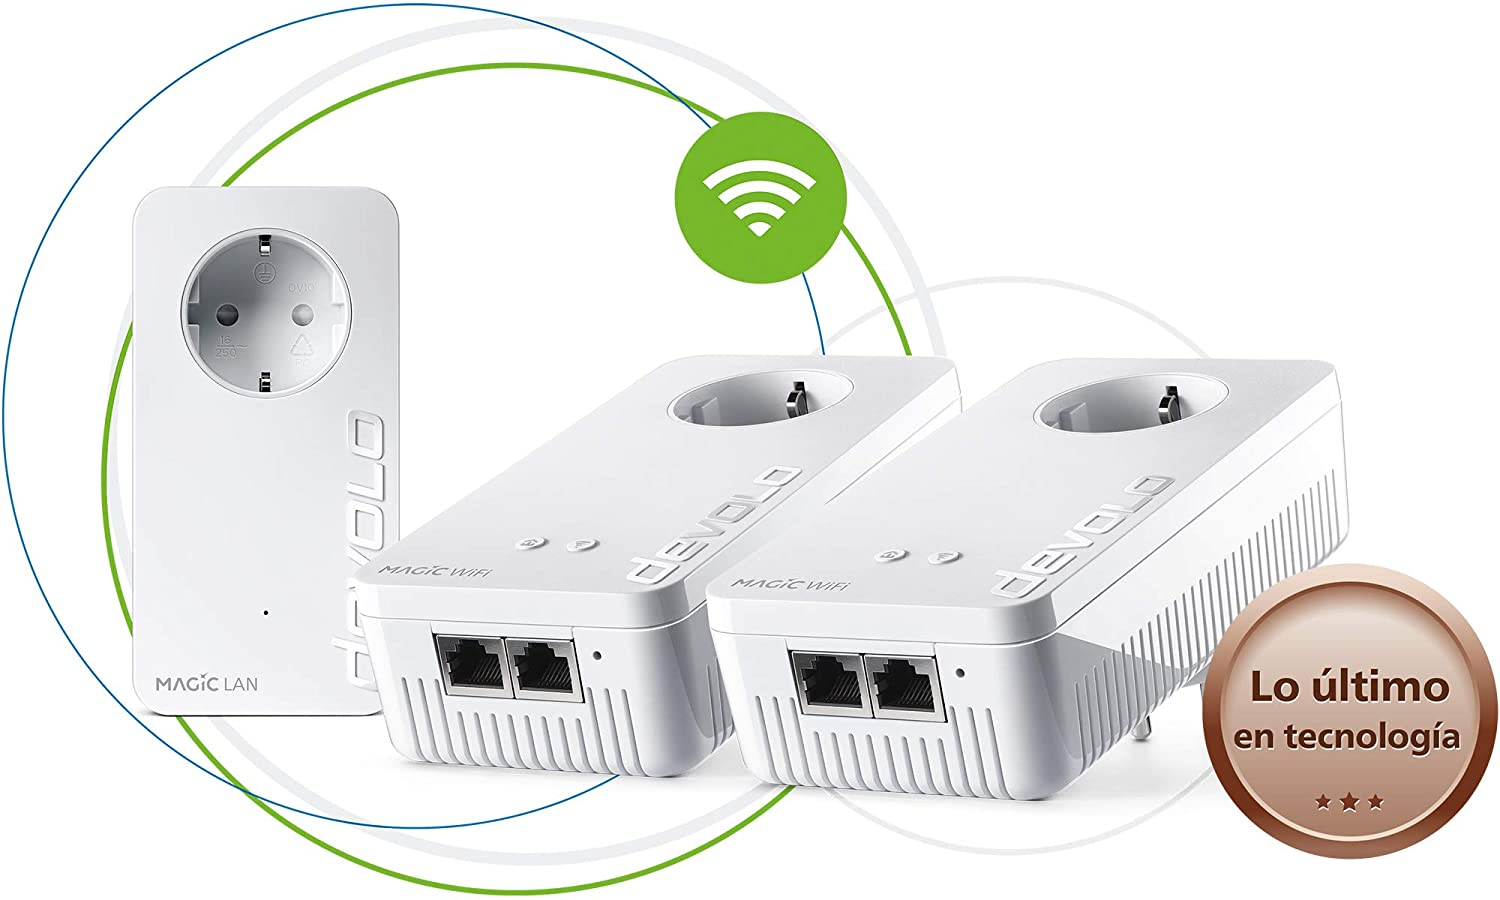 Devolo Magic 1 Wi-Fi - Multiroom Kit con 3 Adaptadores Powerline para una Red Wi-Fi Fiable a Través de Techos y Paredes Mediante los Cables de Corriente, Conexión en Red Mesh Inteligente